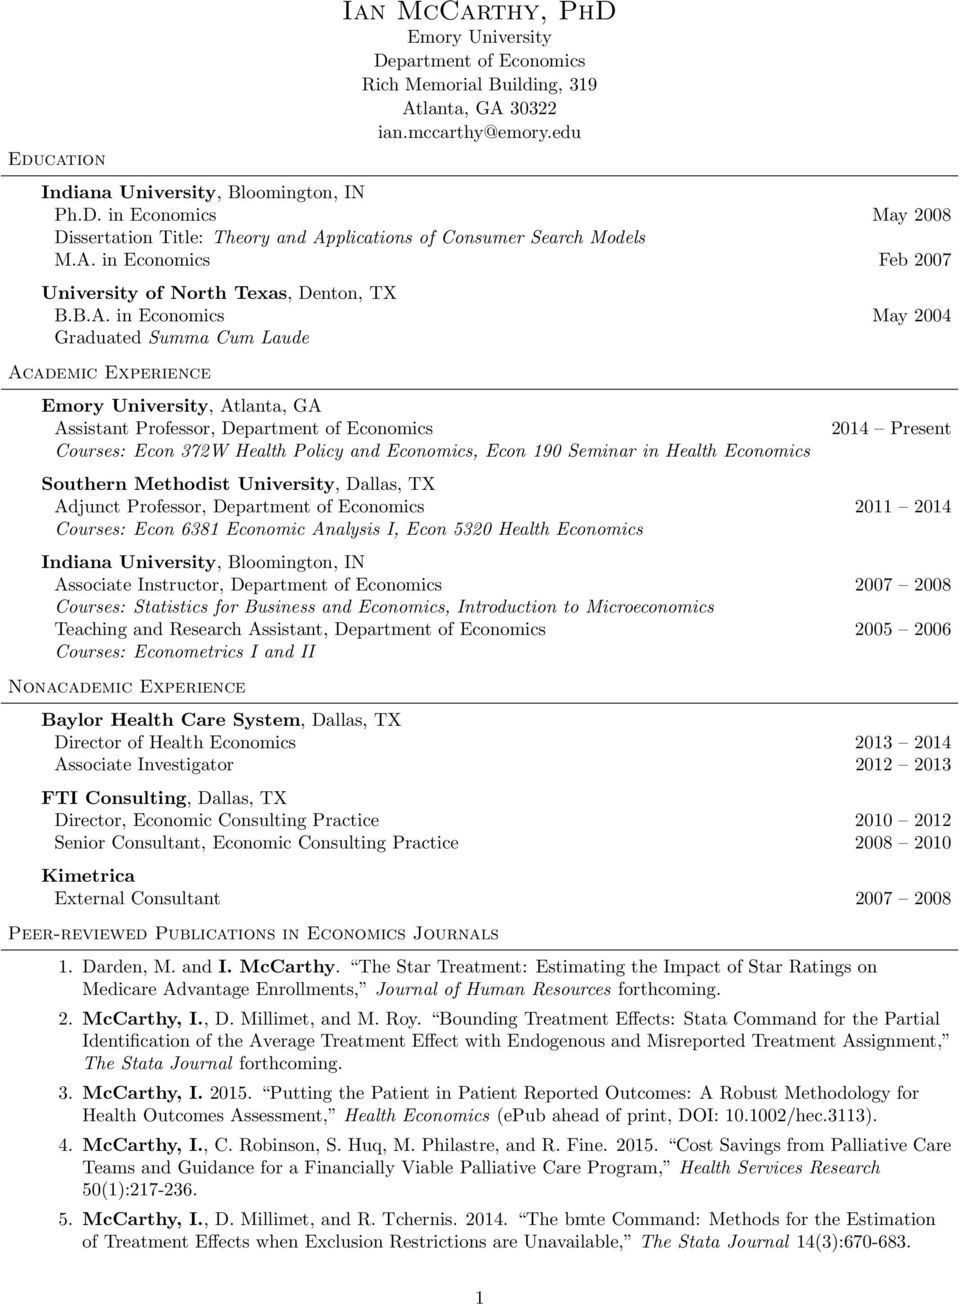 of Economics Courses: Econ 372W Health Policy and Economics, Econ 190 Seminar in Health Economics 2014 Present Southern Methodist University, Dallas, TX Adjunct Professor, Department of Economics